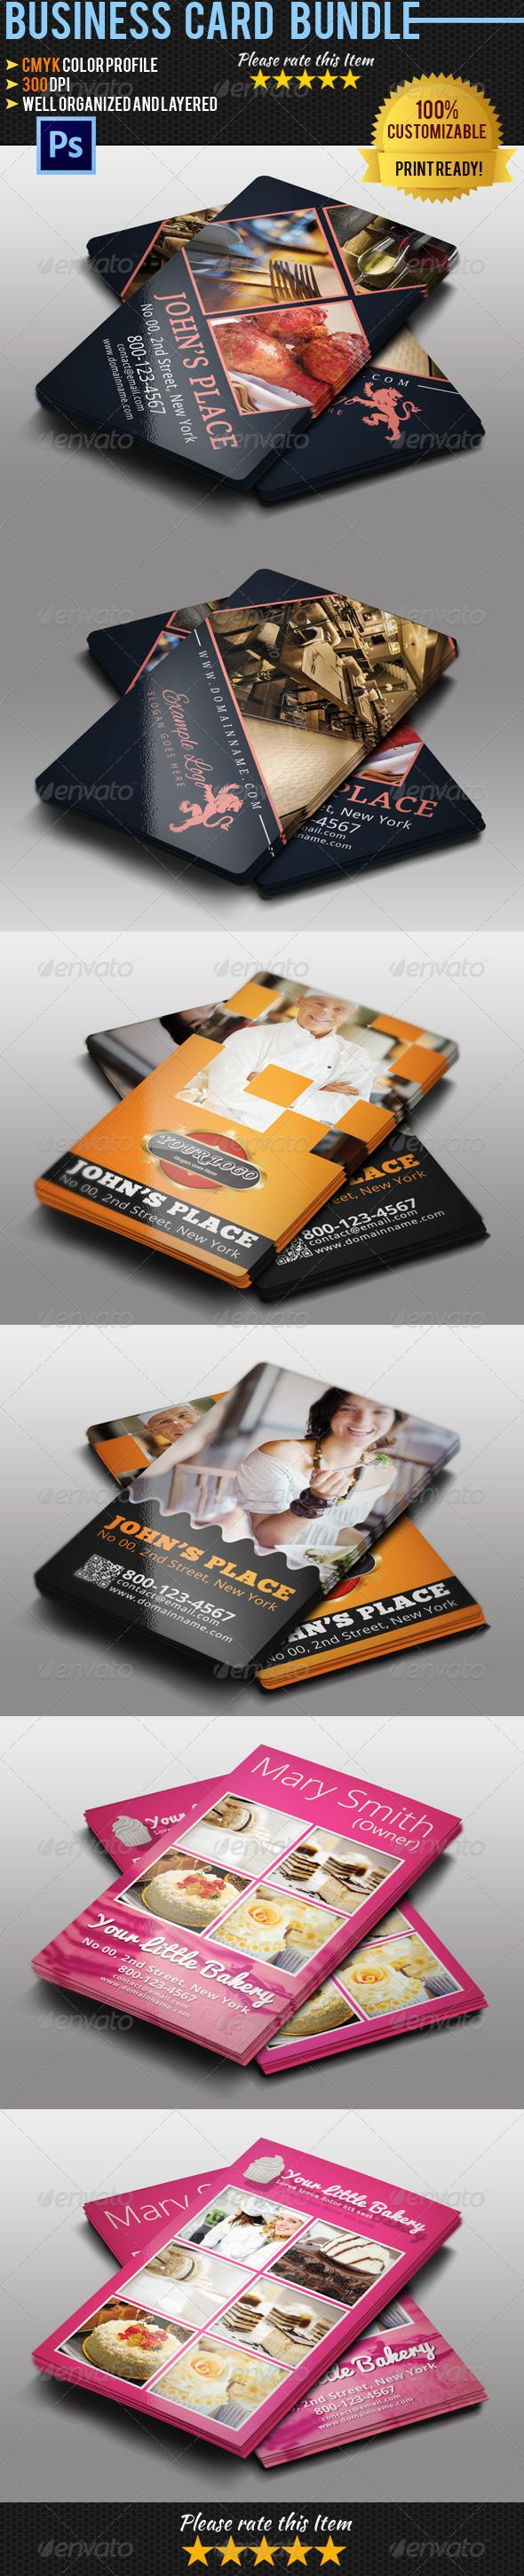 Restaurant business card bundle business cards card templates and restaurant business card template bundle psd download here httpgraphicriveritemrestaurant business card bundle5189087srank99refyinkira reheart Image collections